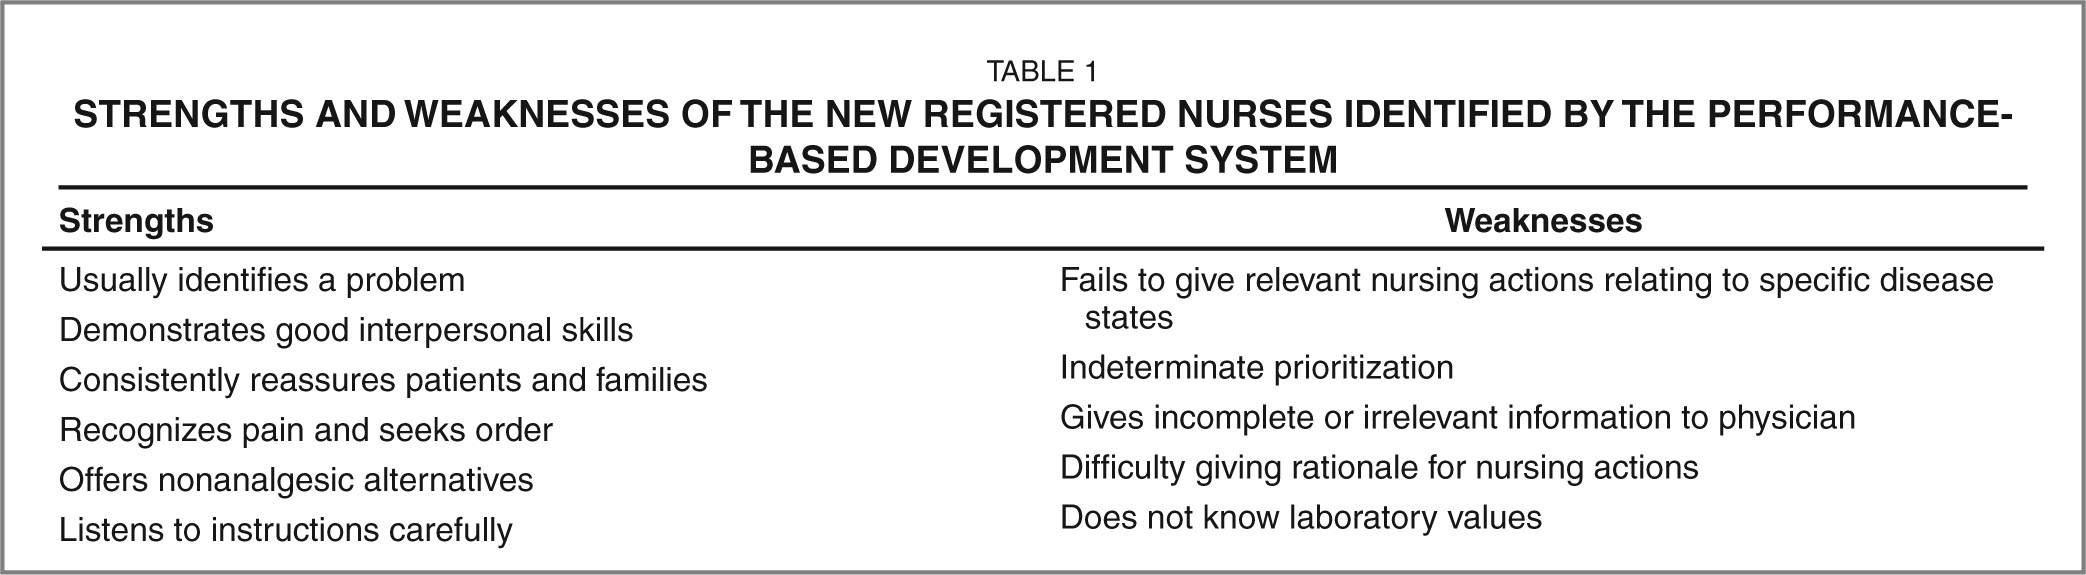 Strengths and Weaknesses of the New Registered Nurses Identified by the Performance-Based Development System